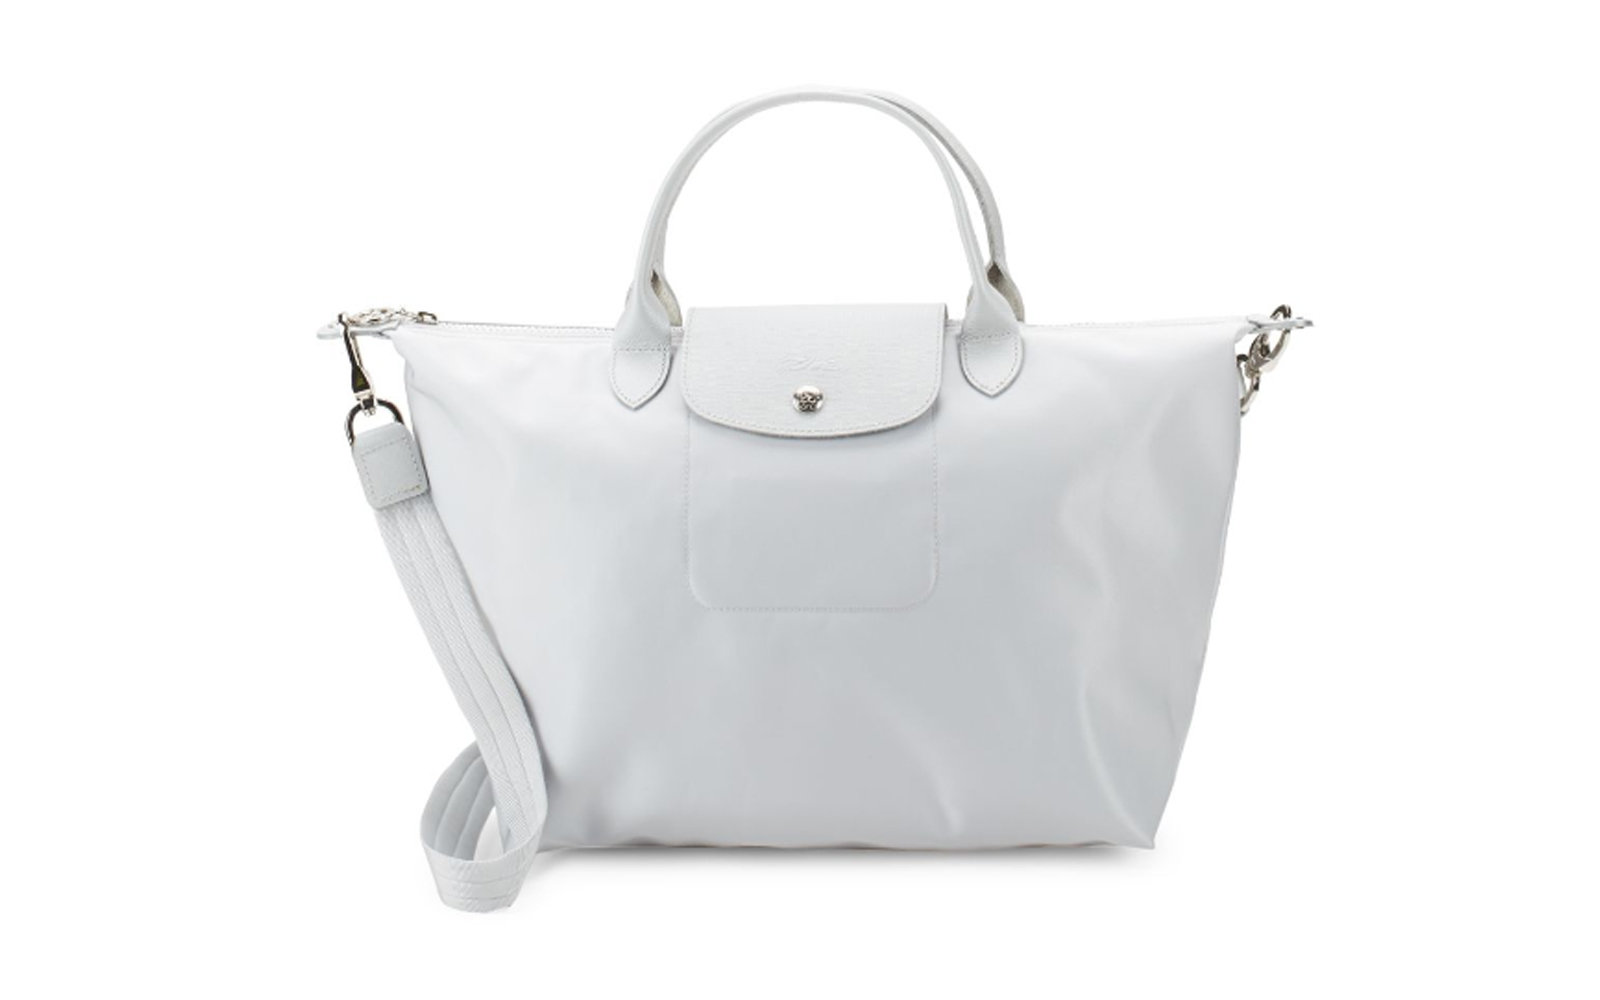 Longchamp Le Pliage Neo Medium Top Handle Bag in Silver